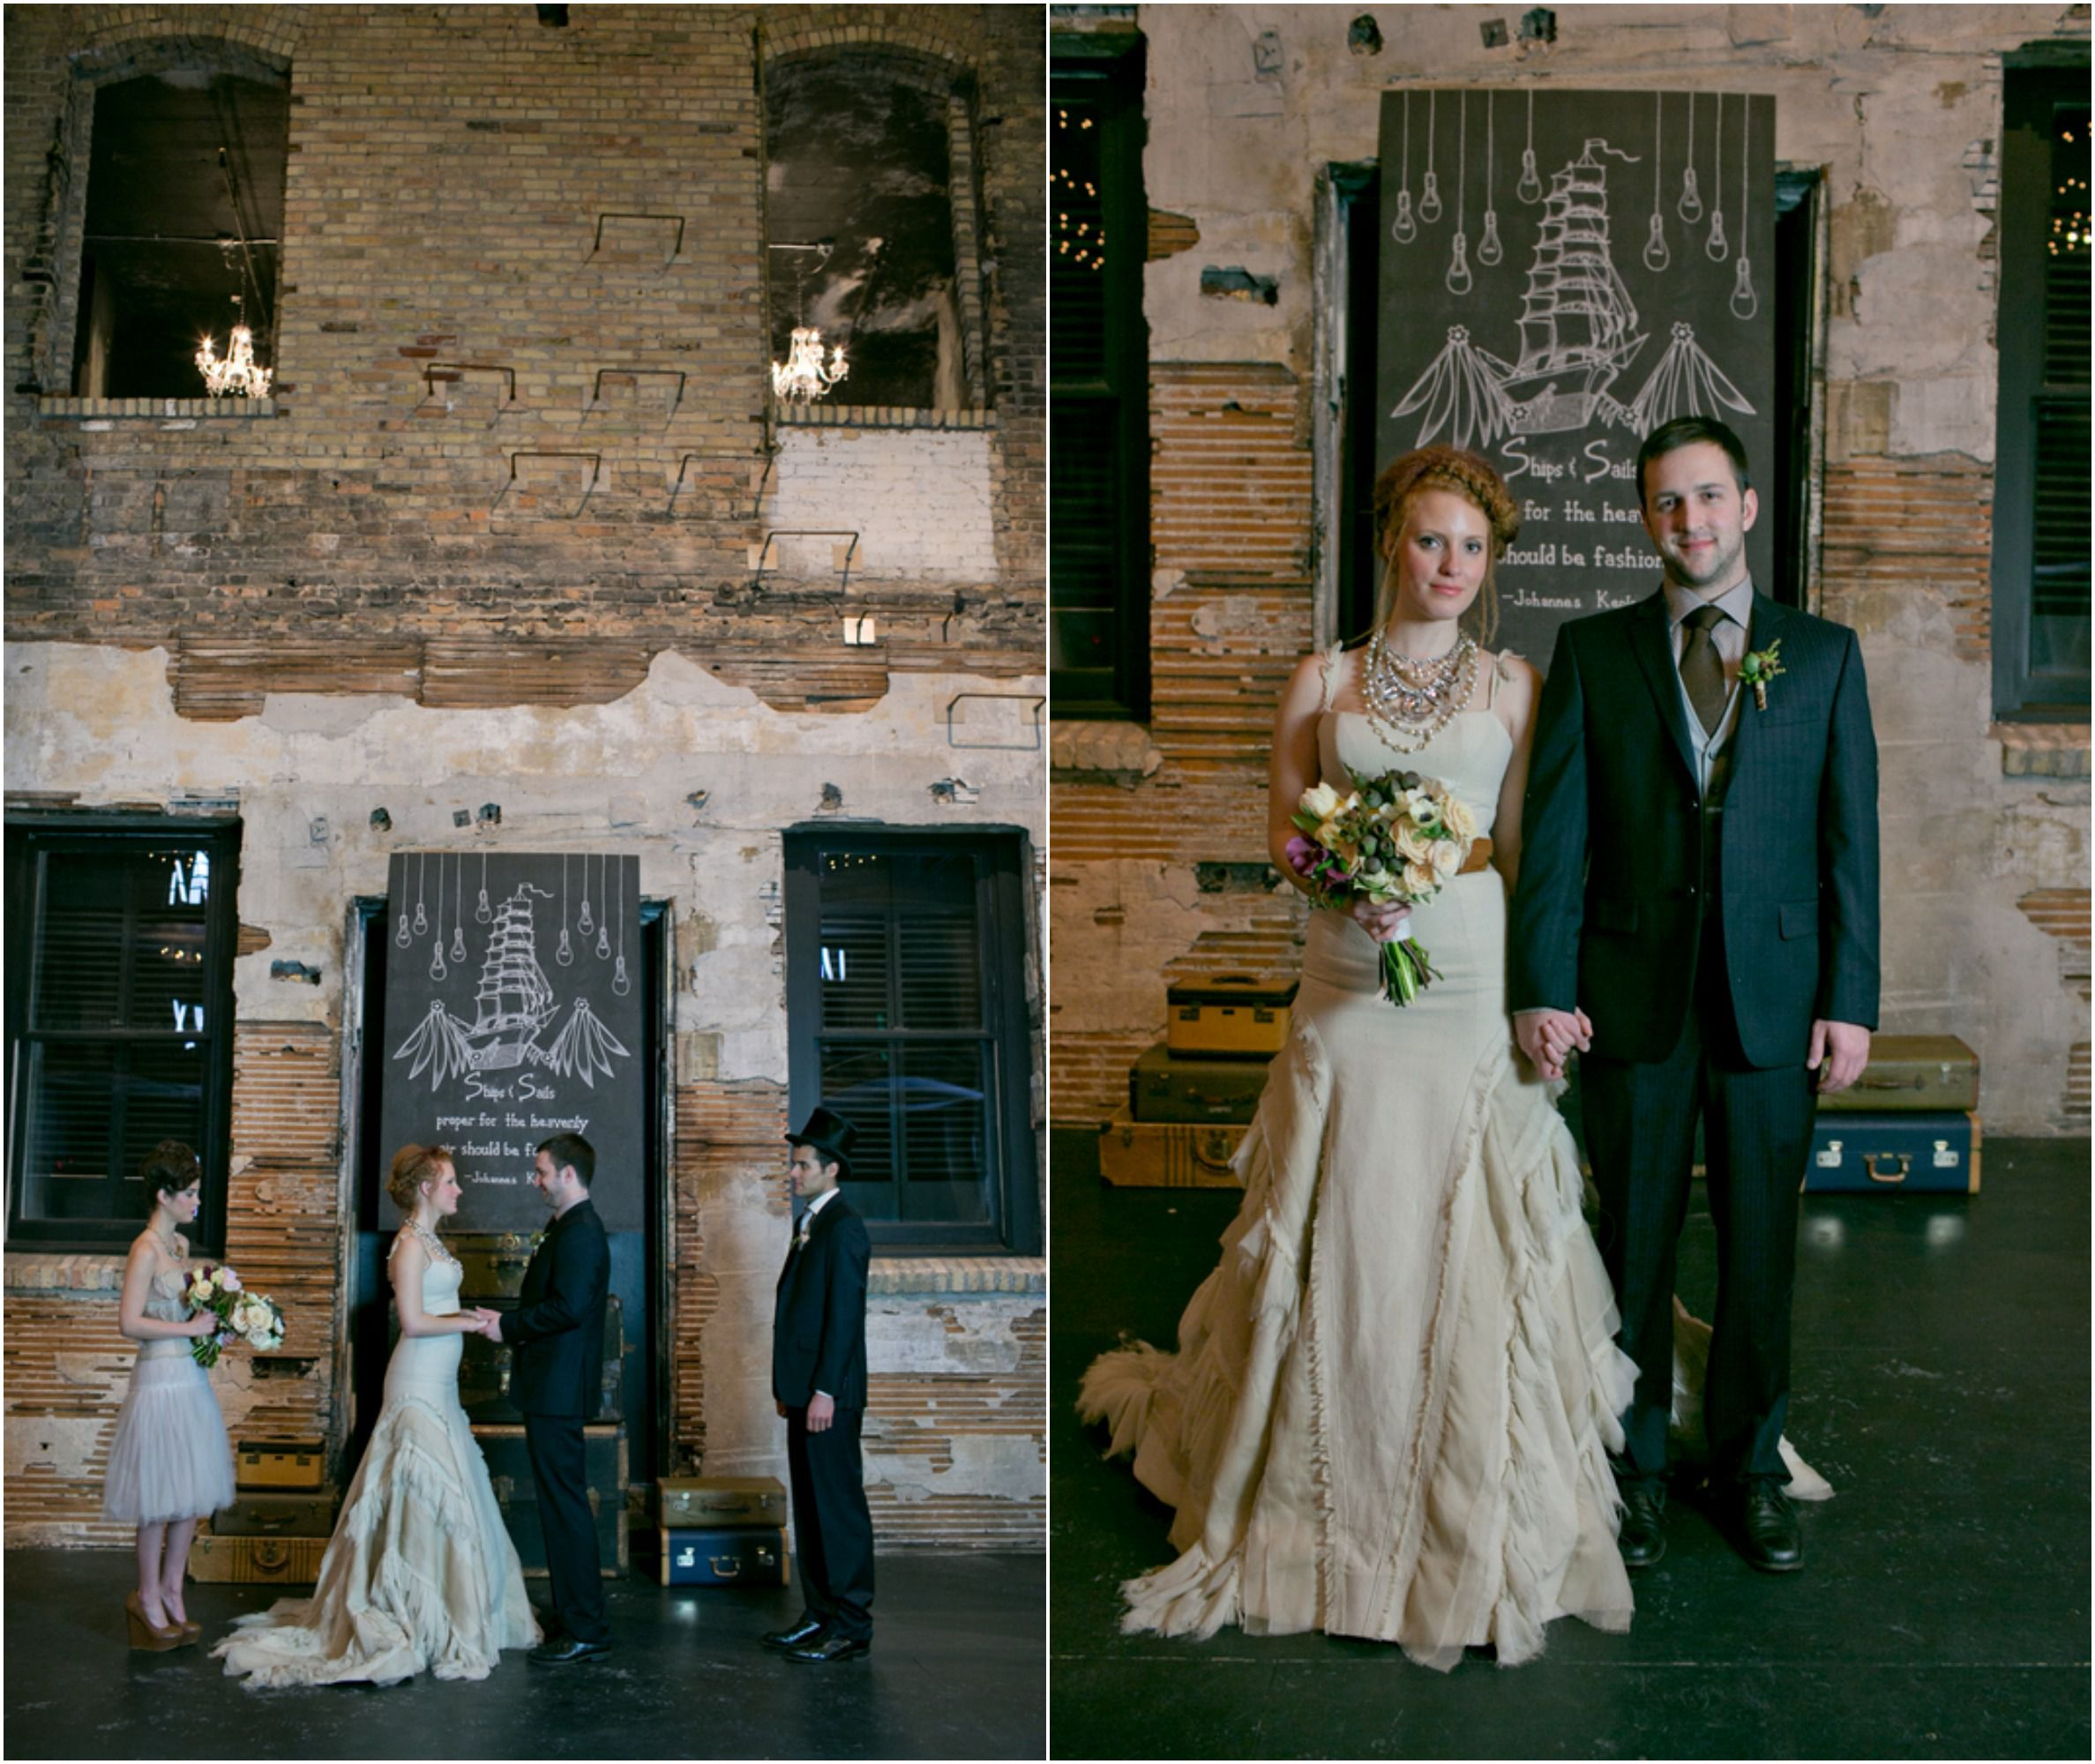 Wedding Ideas And Inspirations: Steampunk Wedding Inspiration